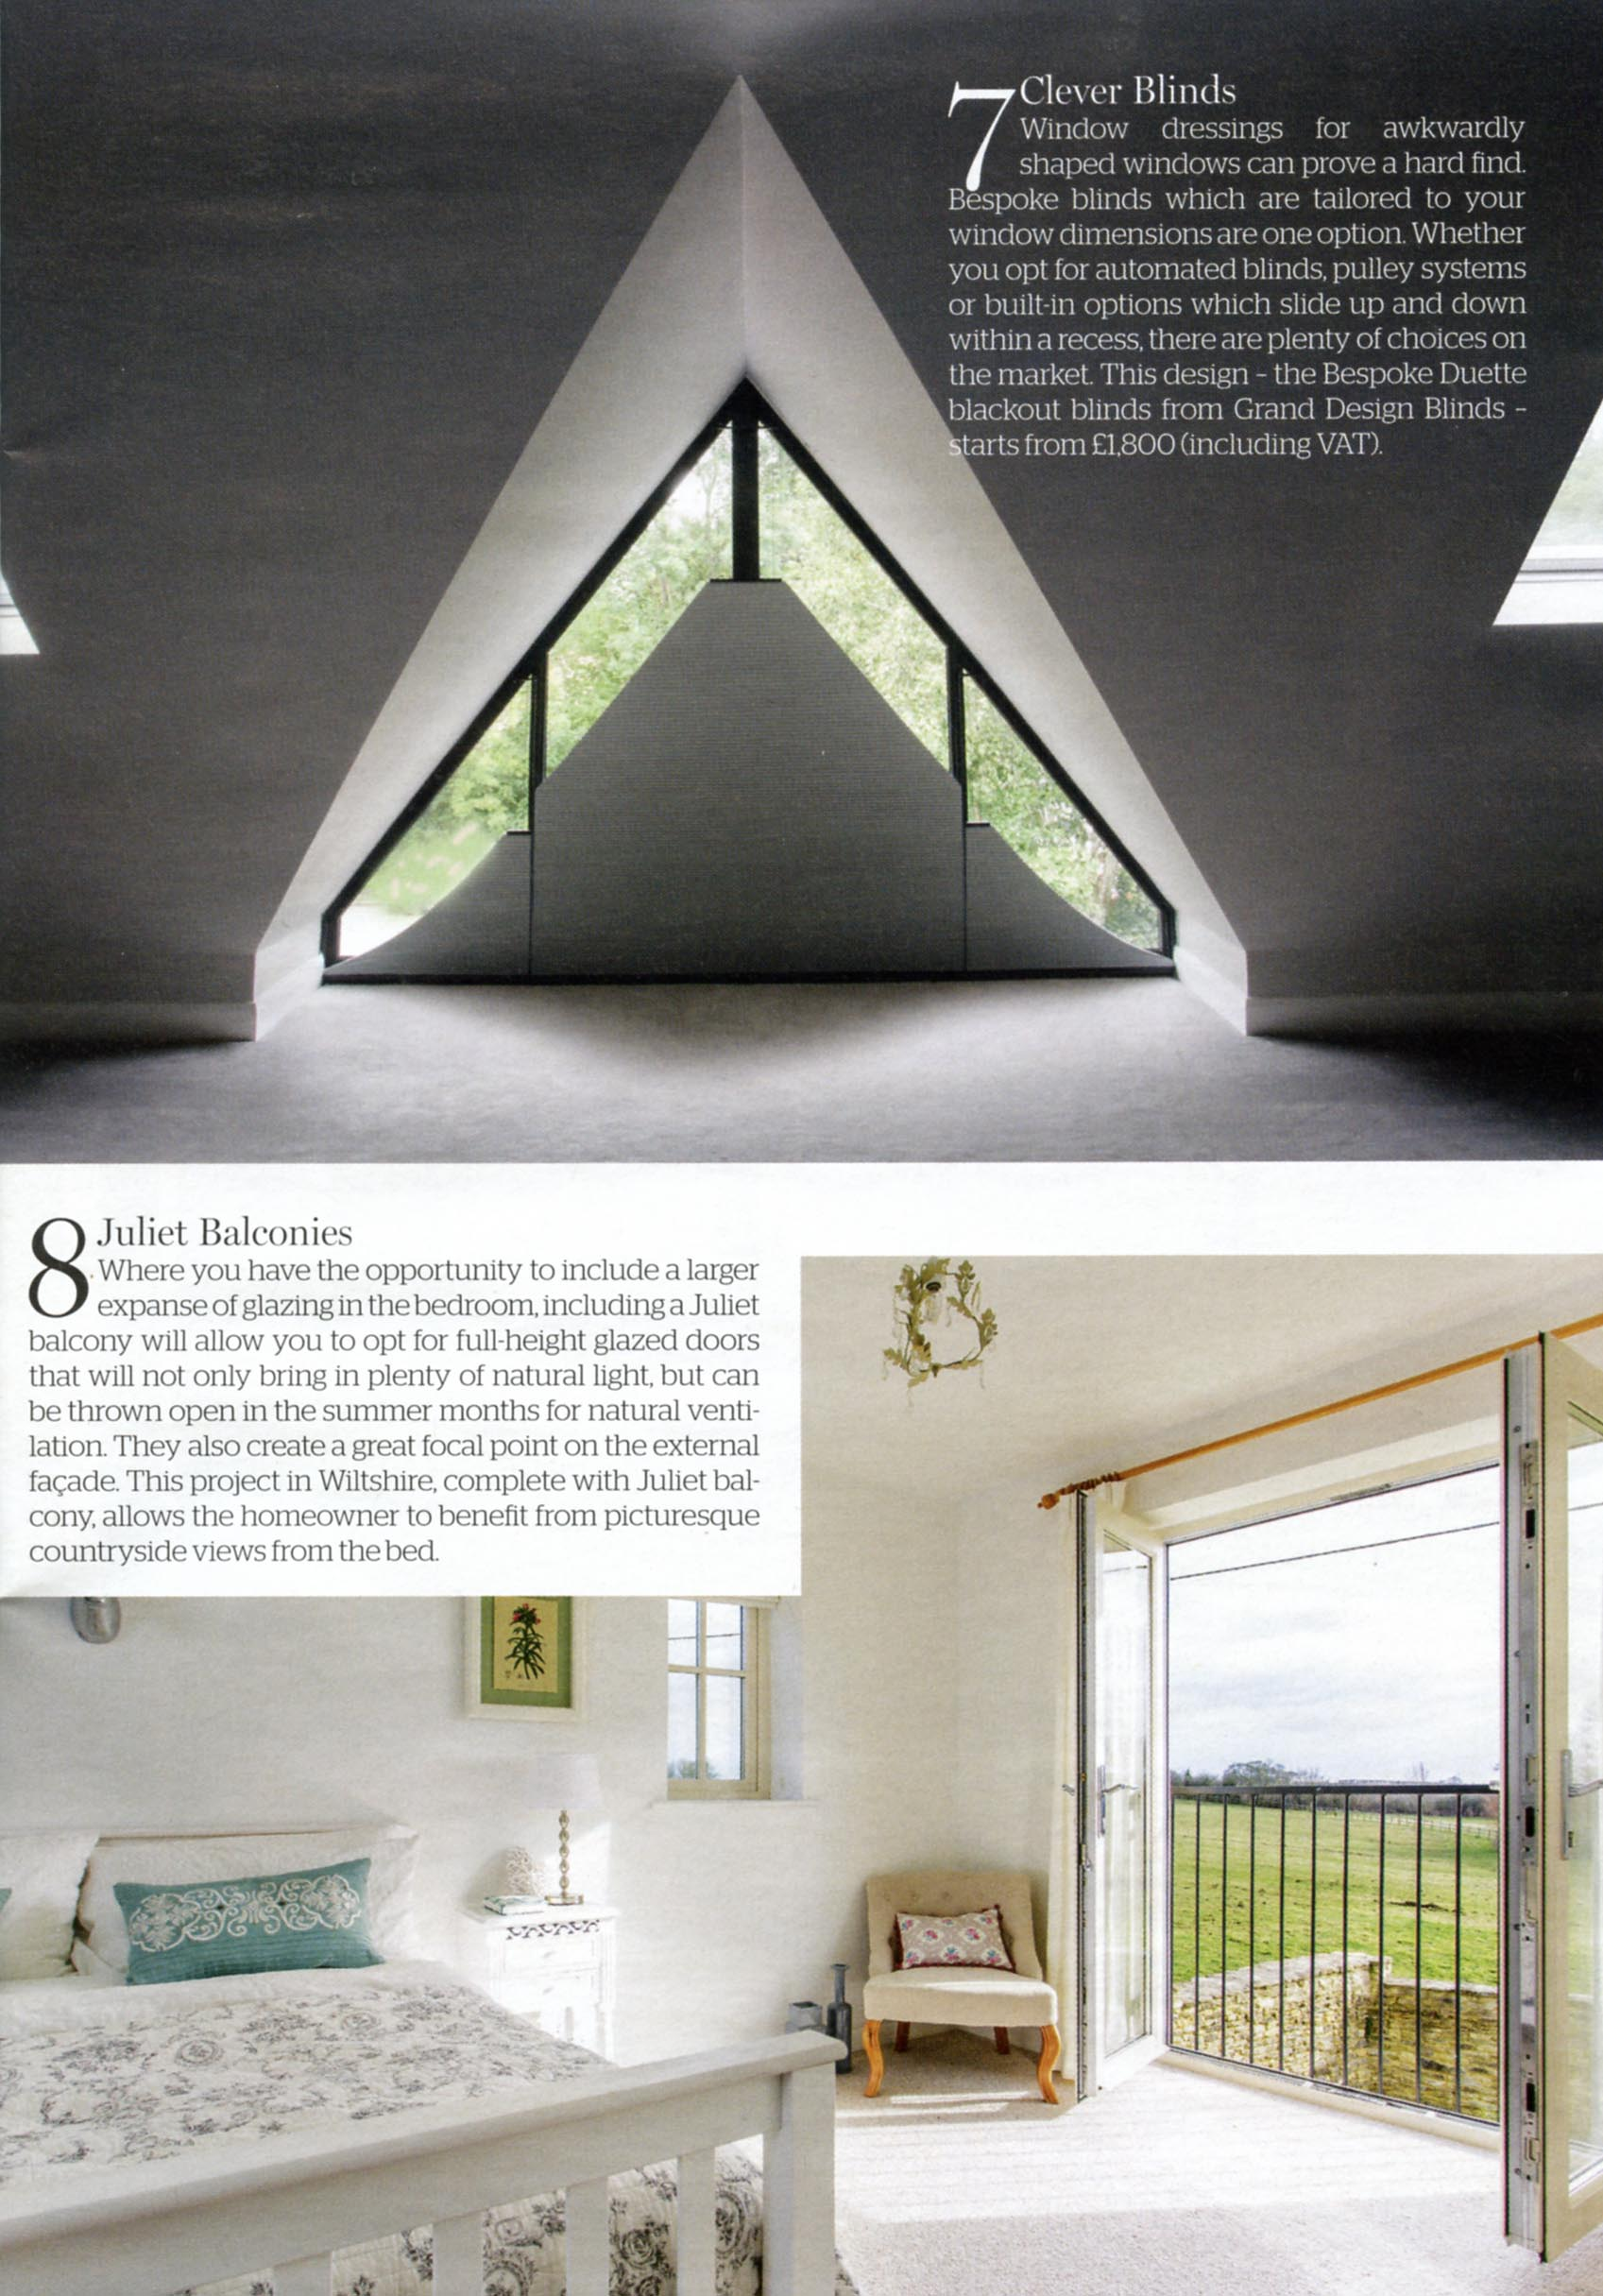 Our Press — Grand Design Blinds